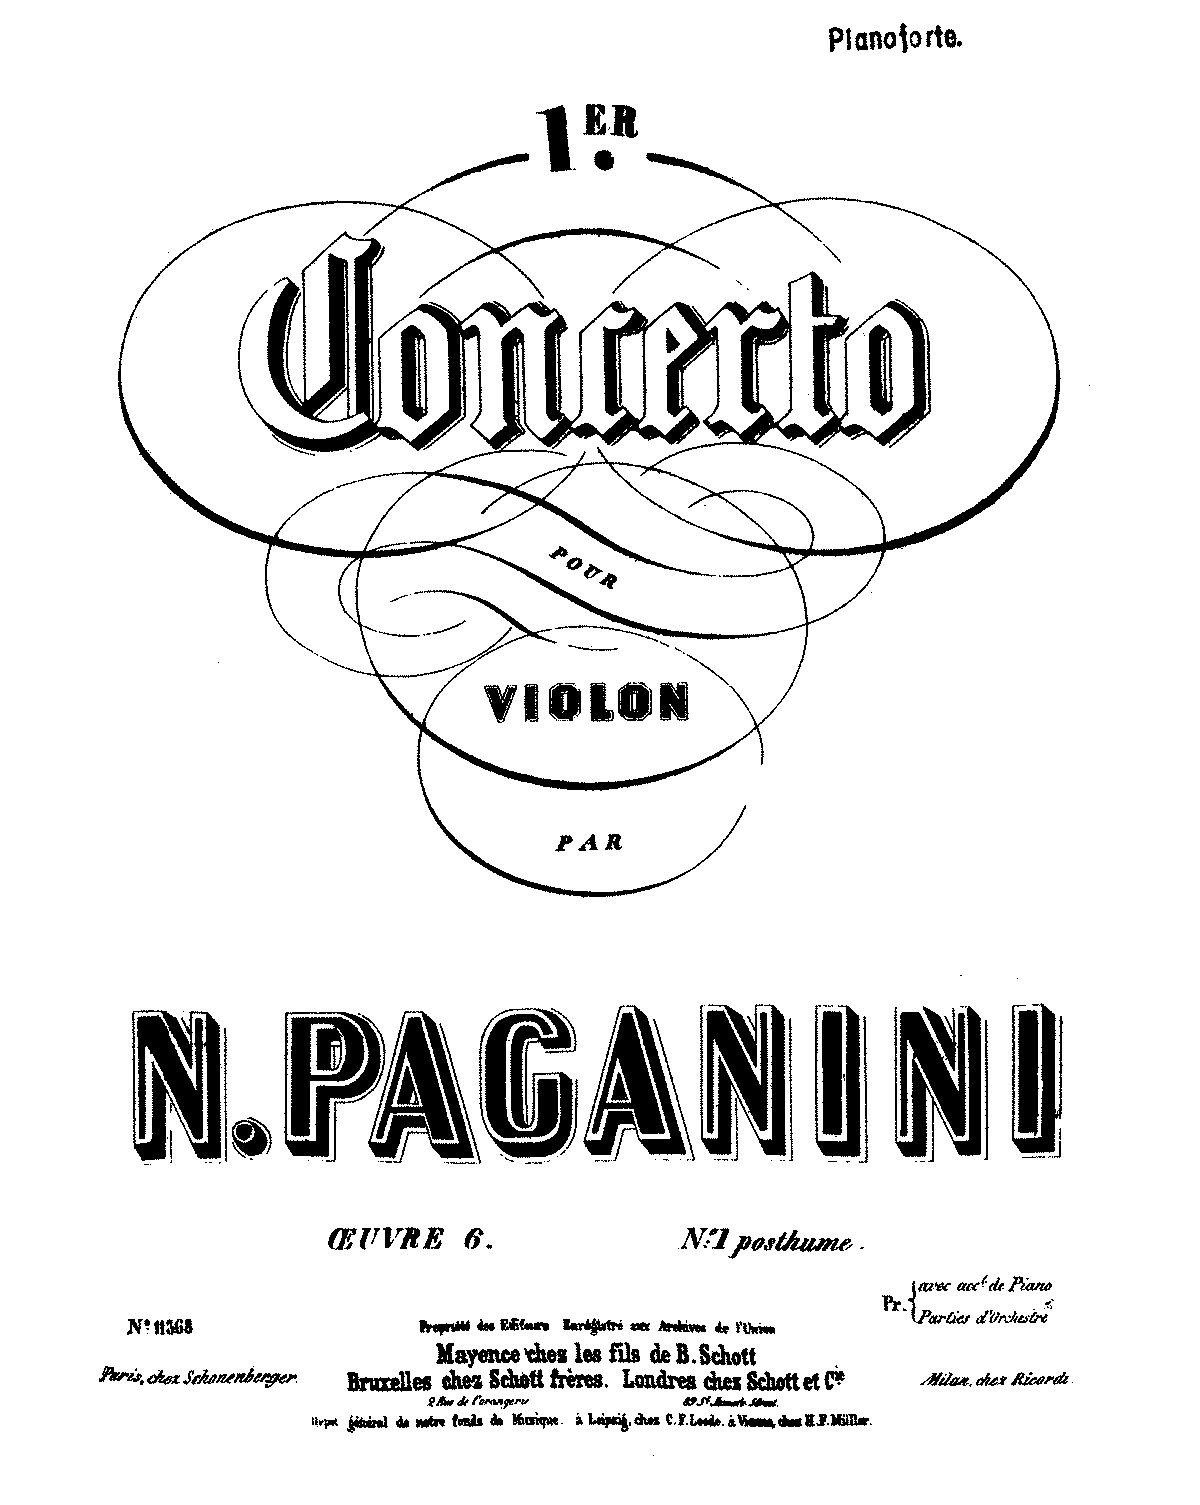 PMLP30286-Paganini - Violin Concerto No1 Op6 (in Eb Major) (Schott) piano score.pdf